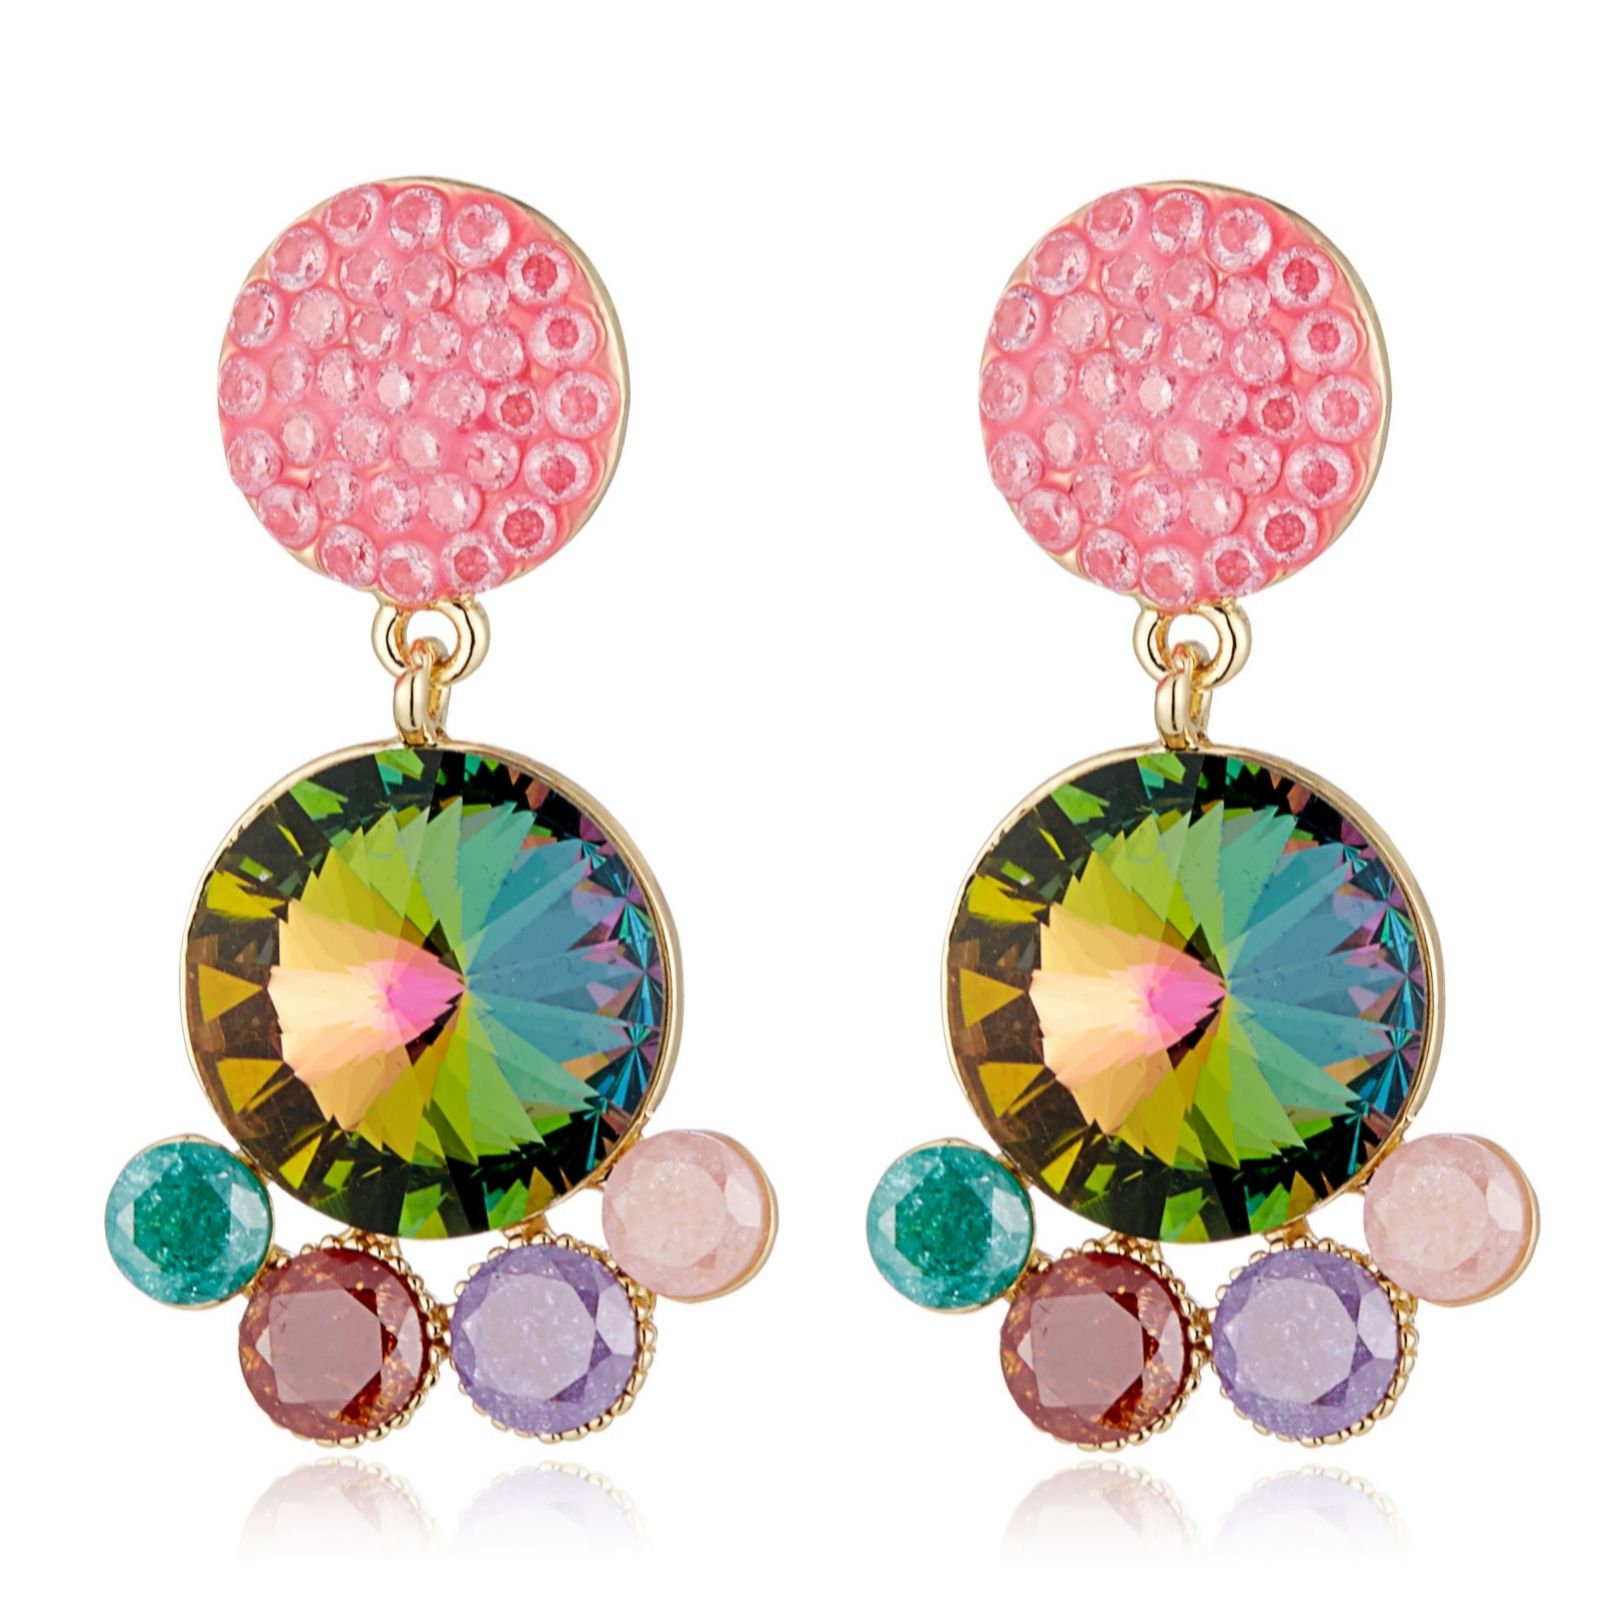 e83dc0fc3fd42 Butler & Wilson Round Drop Earrings - QVC UK